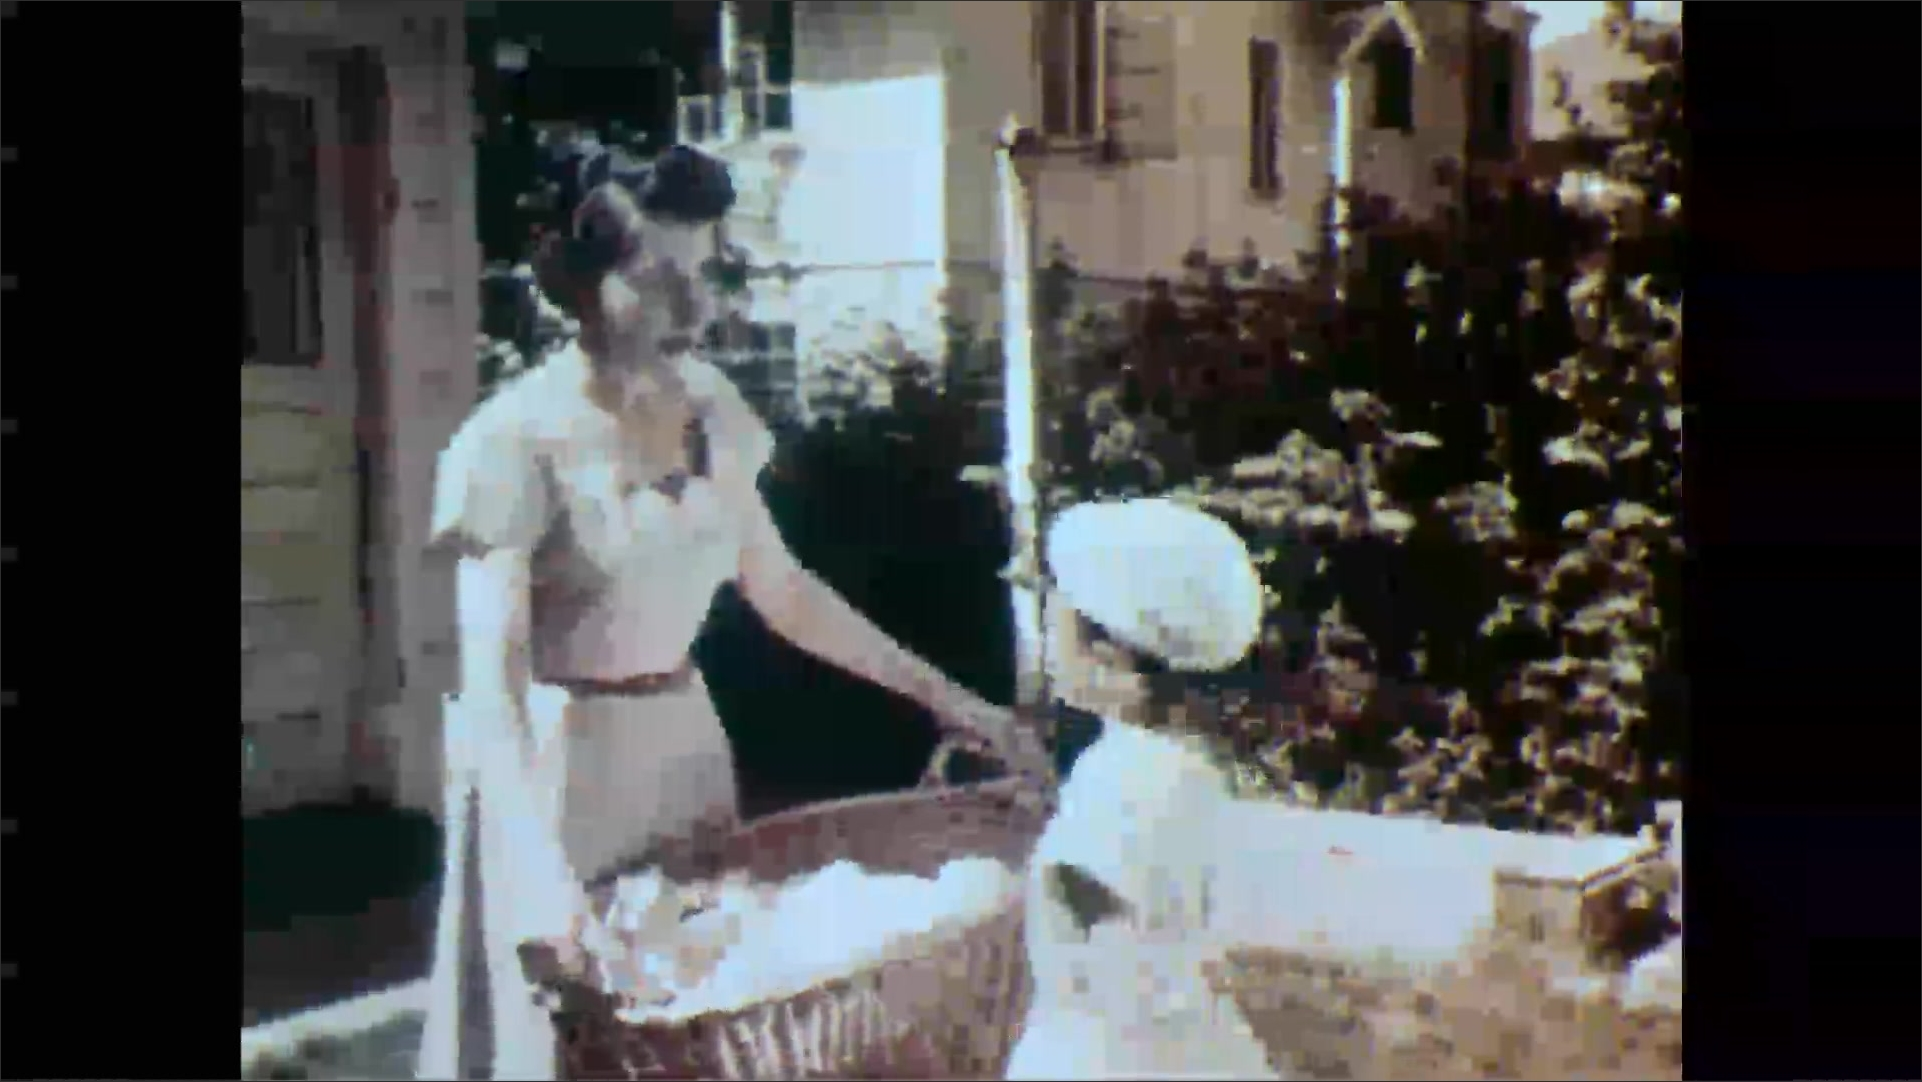 1950s: Girl panics and looks around. Girl runs to open gate and then back to house. Woman carrying laundry talks to girl. Girl runs from woman with laundry basket.